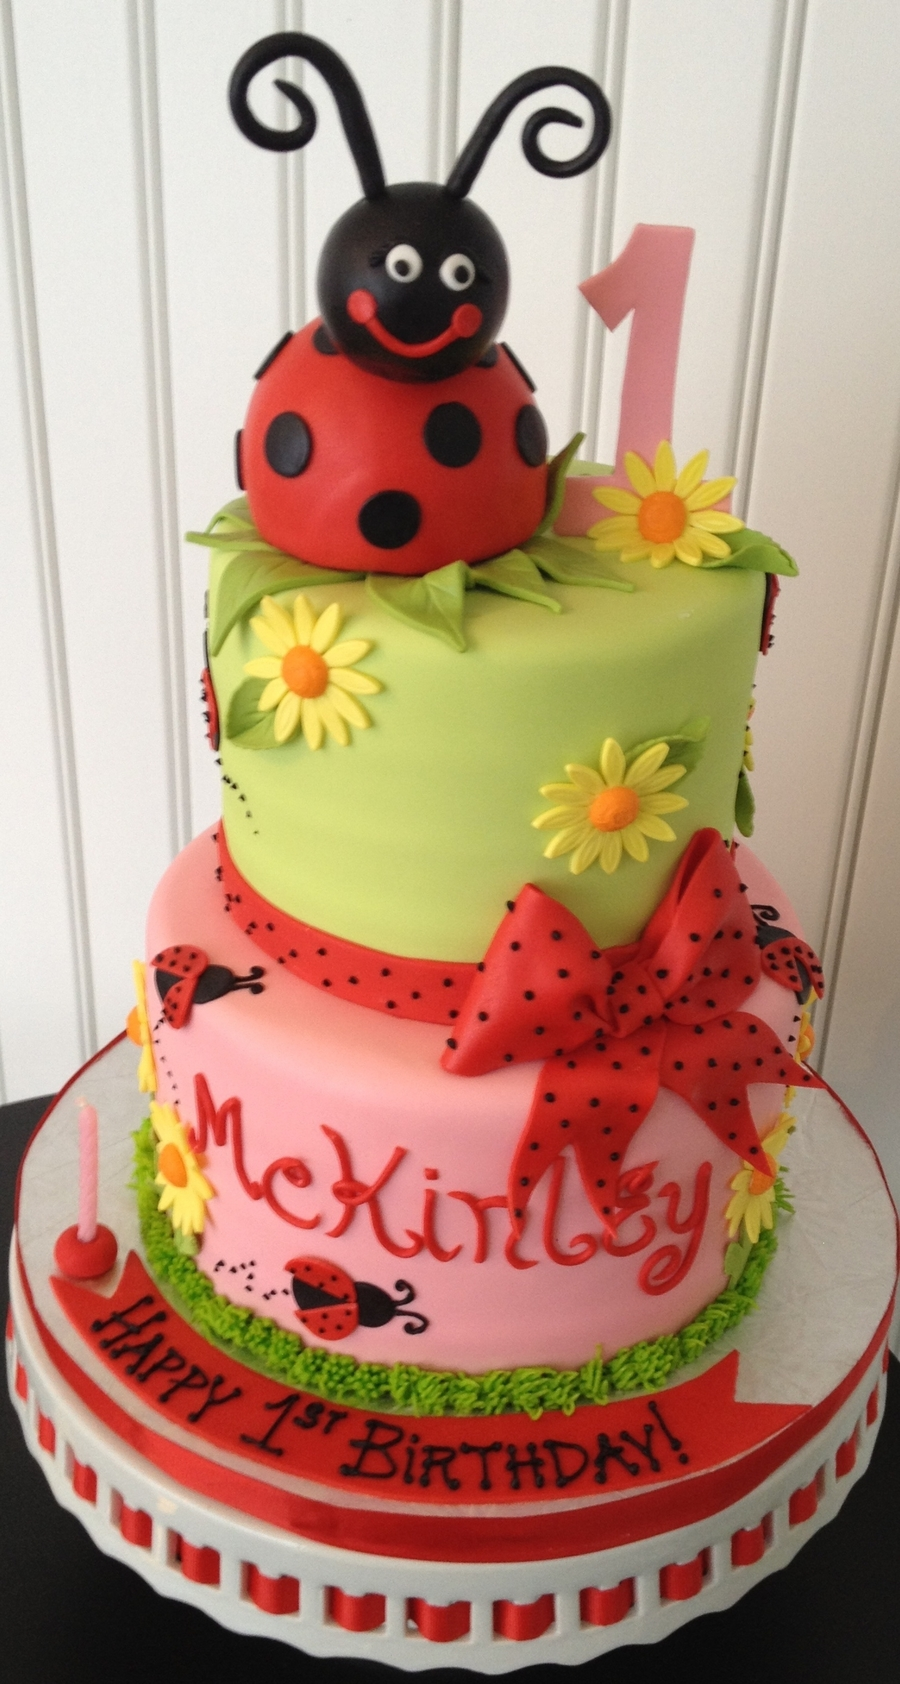 Birthday Cake Images Lady : Lady Bug 1St Birthday Cake - CakeCentral.com